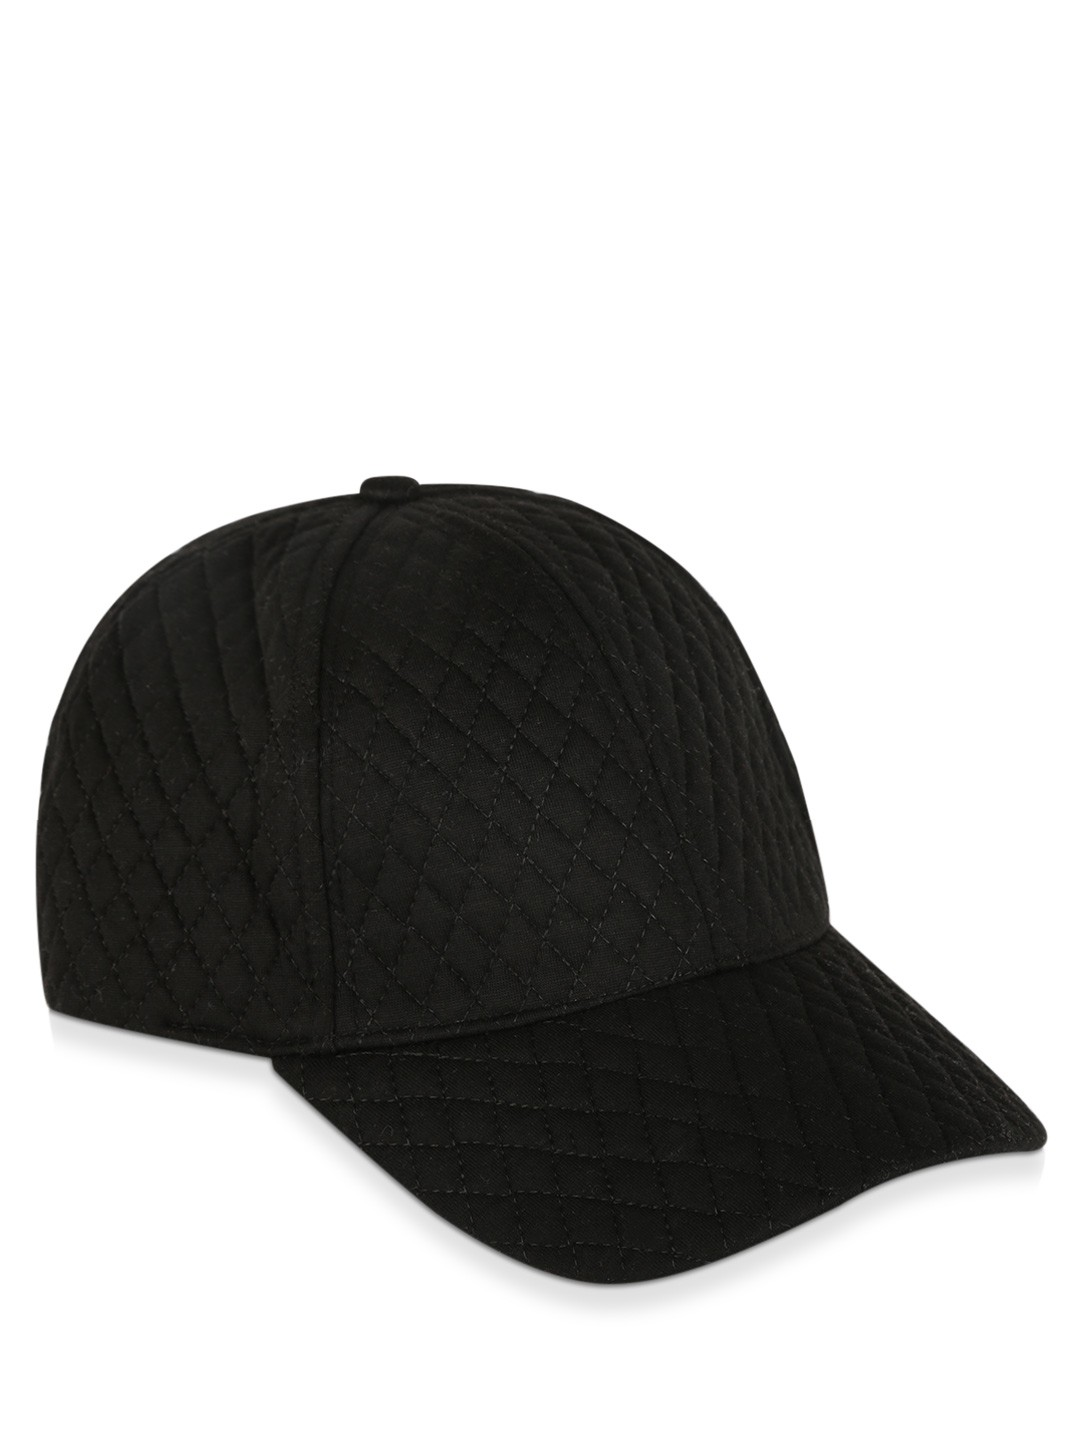 buy new look quilted cap for s black caps